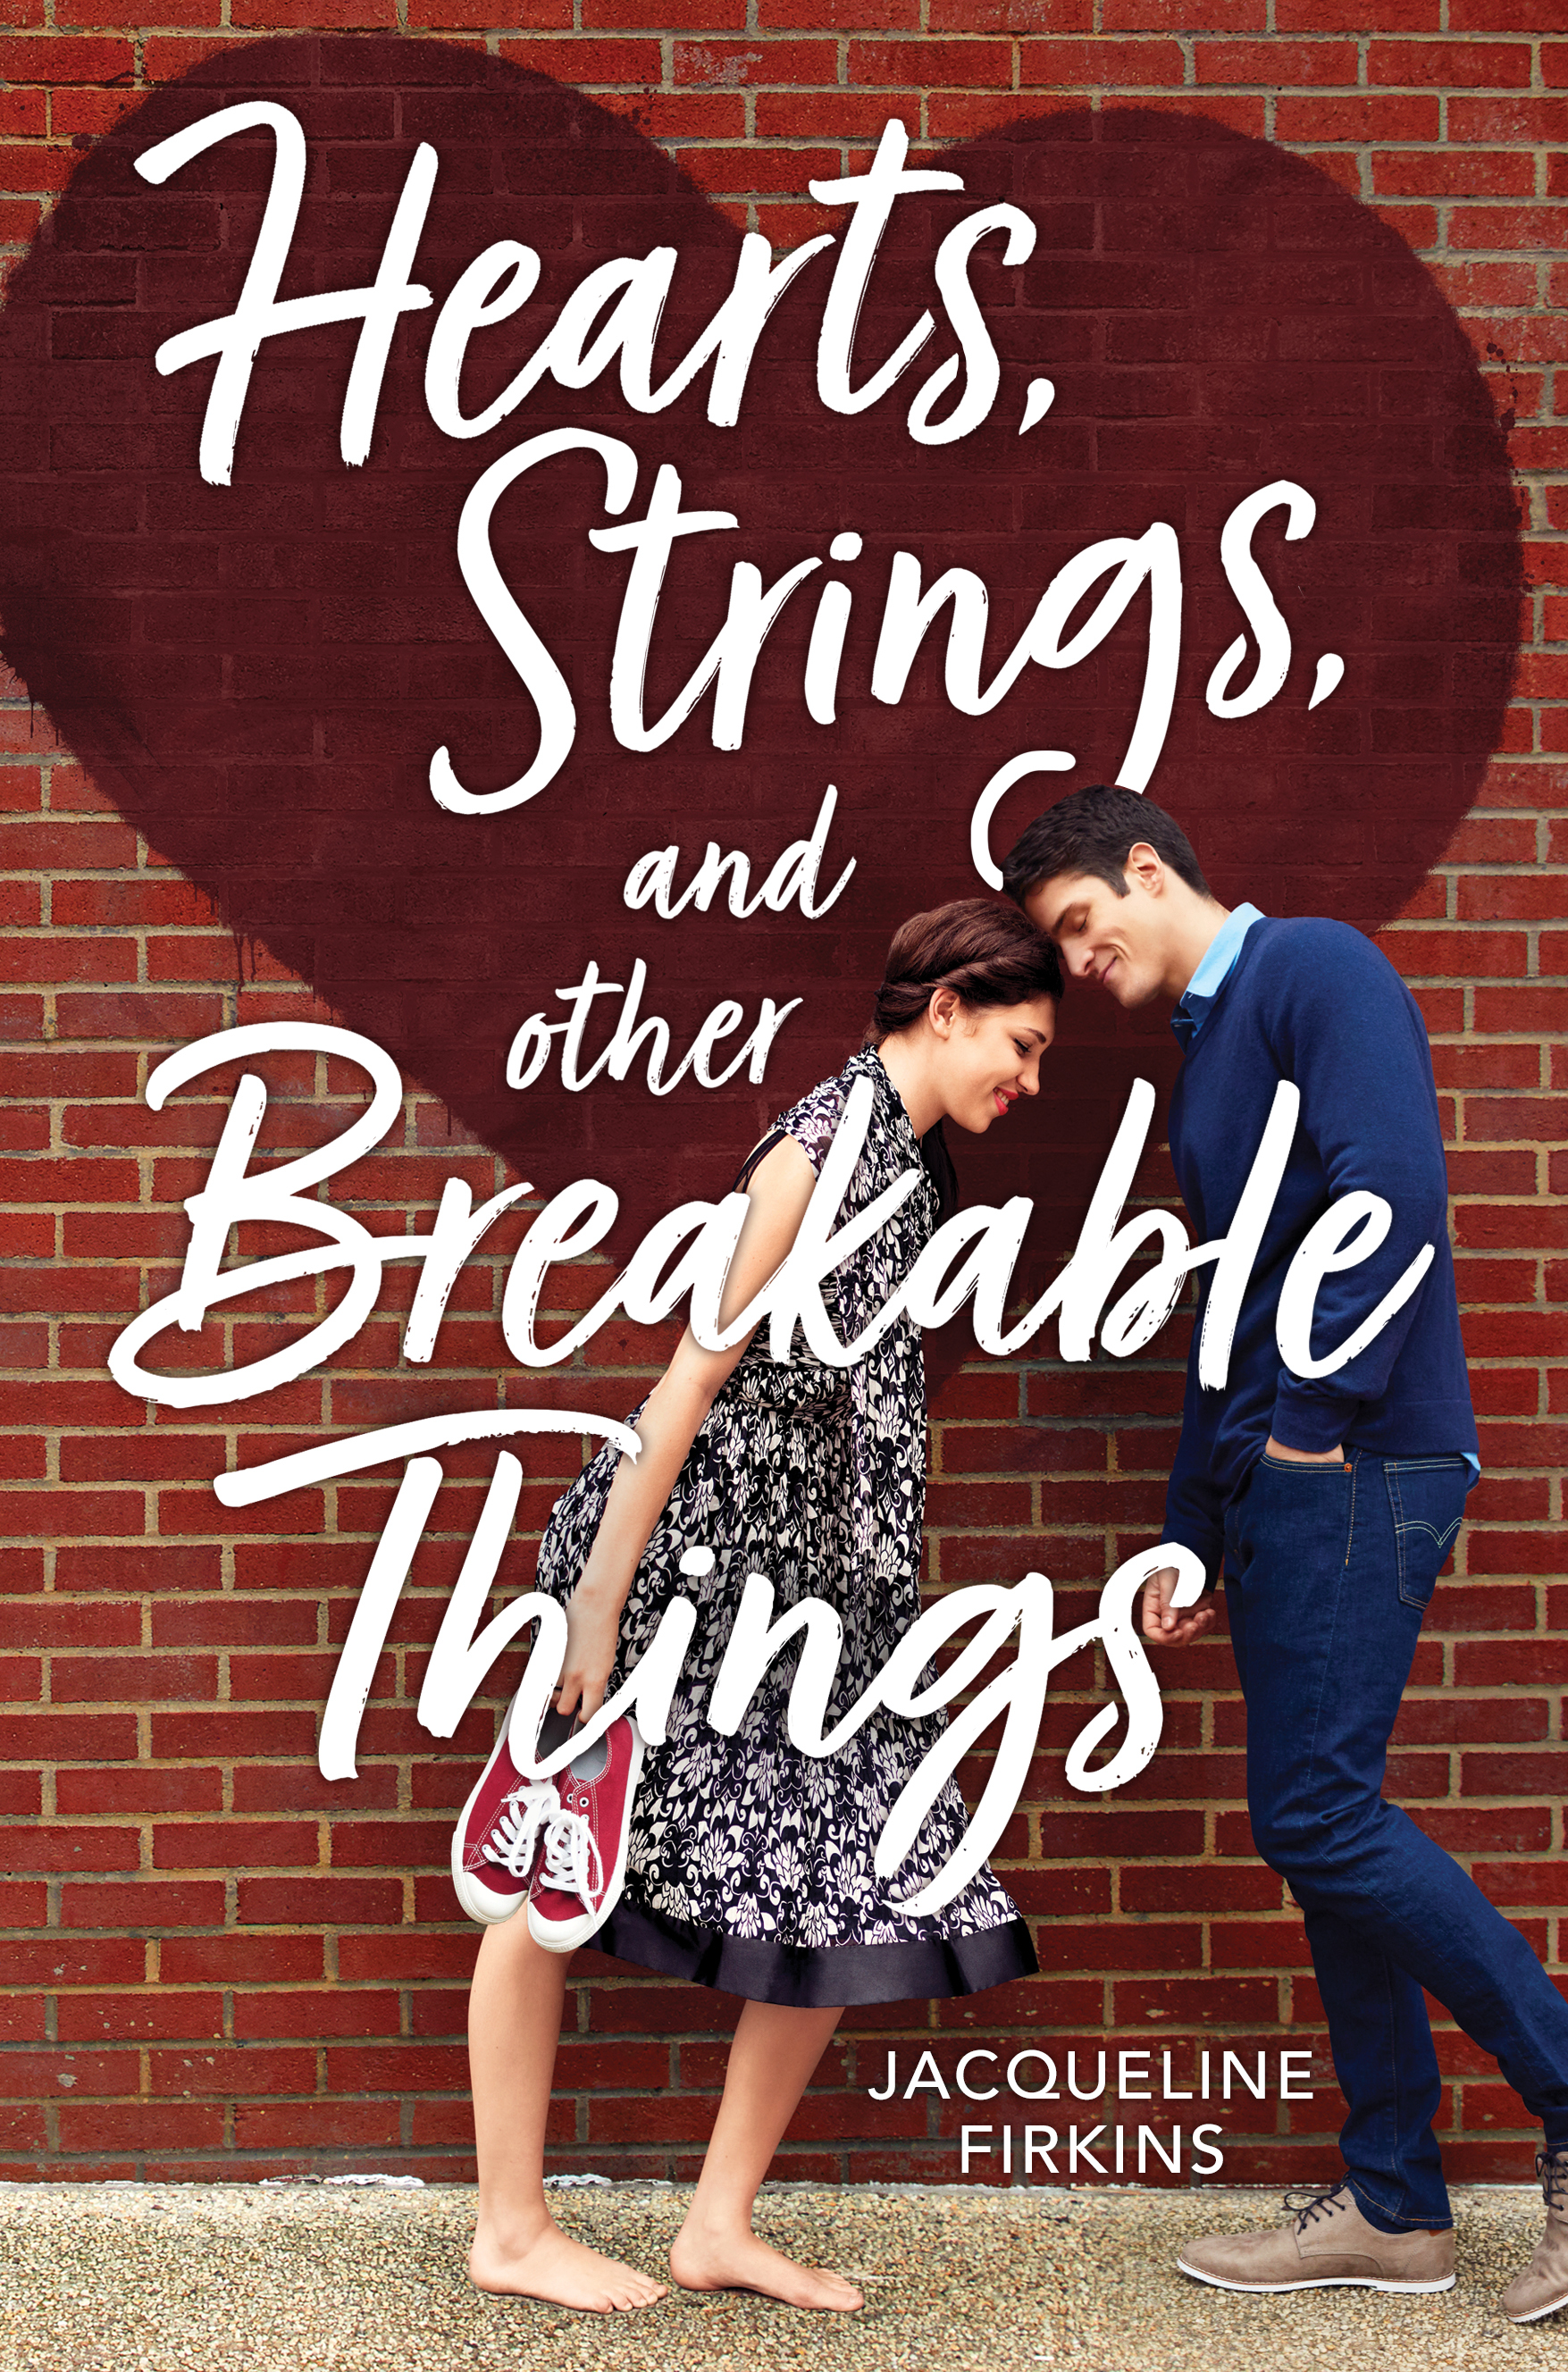 Heartstrings and other Breakable Things, by Jacqueline Firkins (2019)